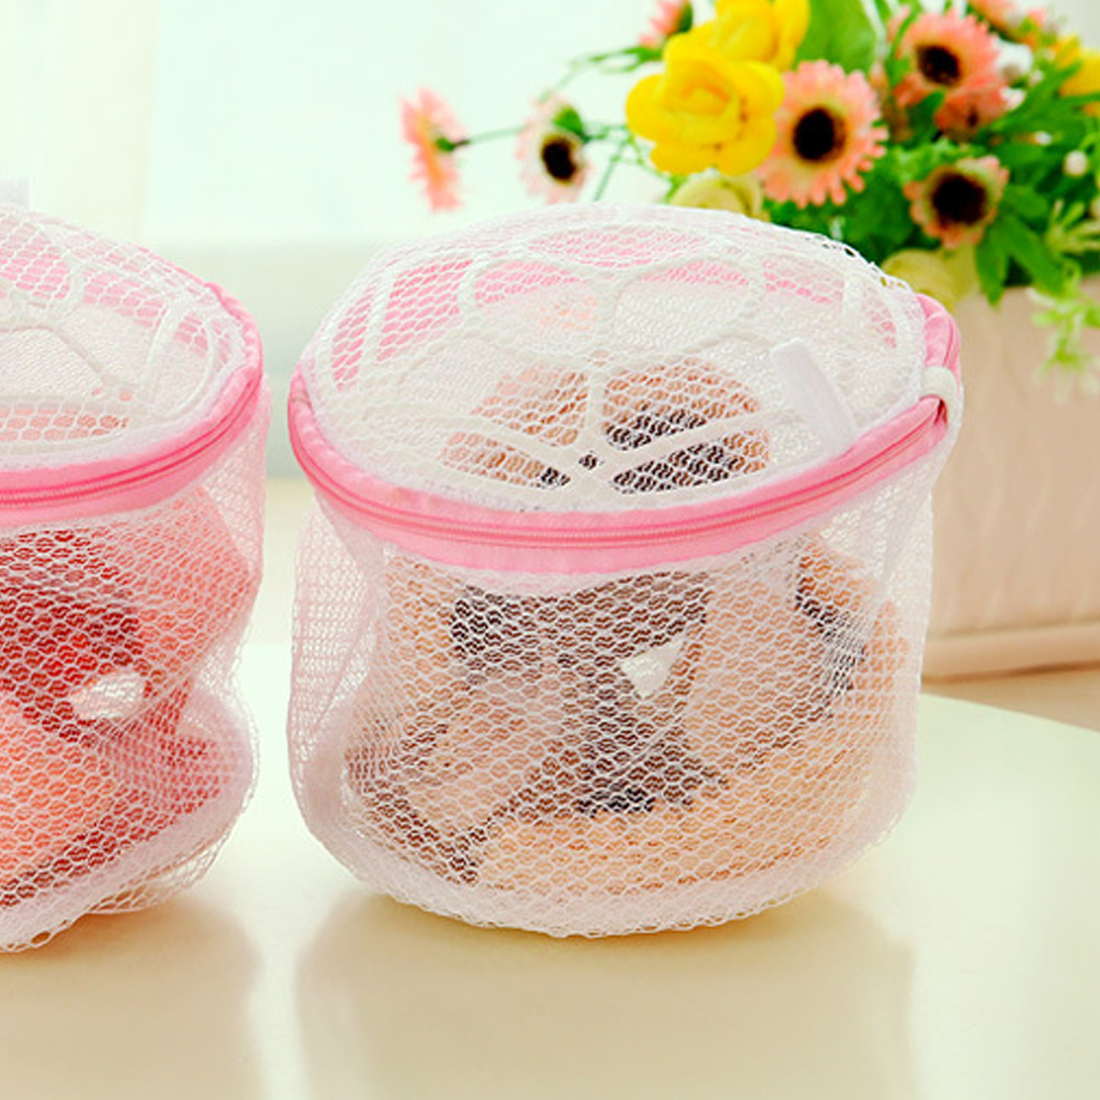 New 19x14cm Multifunction Wash Protect Bag Bra Care With Hanger Bra Underwear Storage Drying Rack Basket Laundry Bags & Baskets